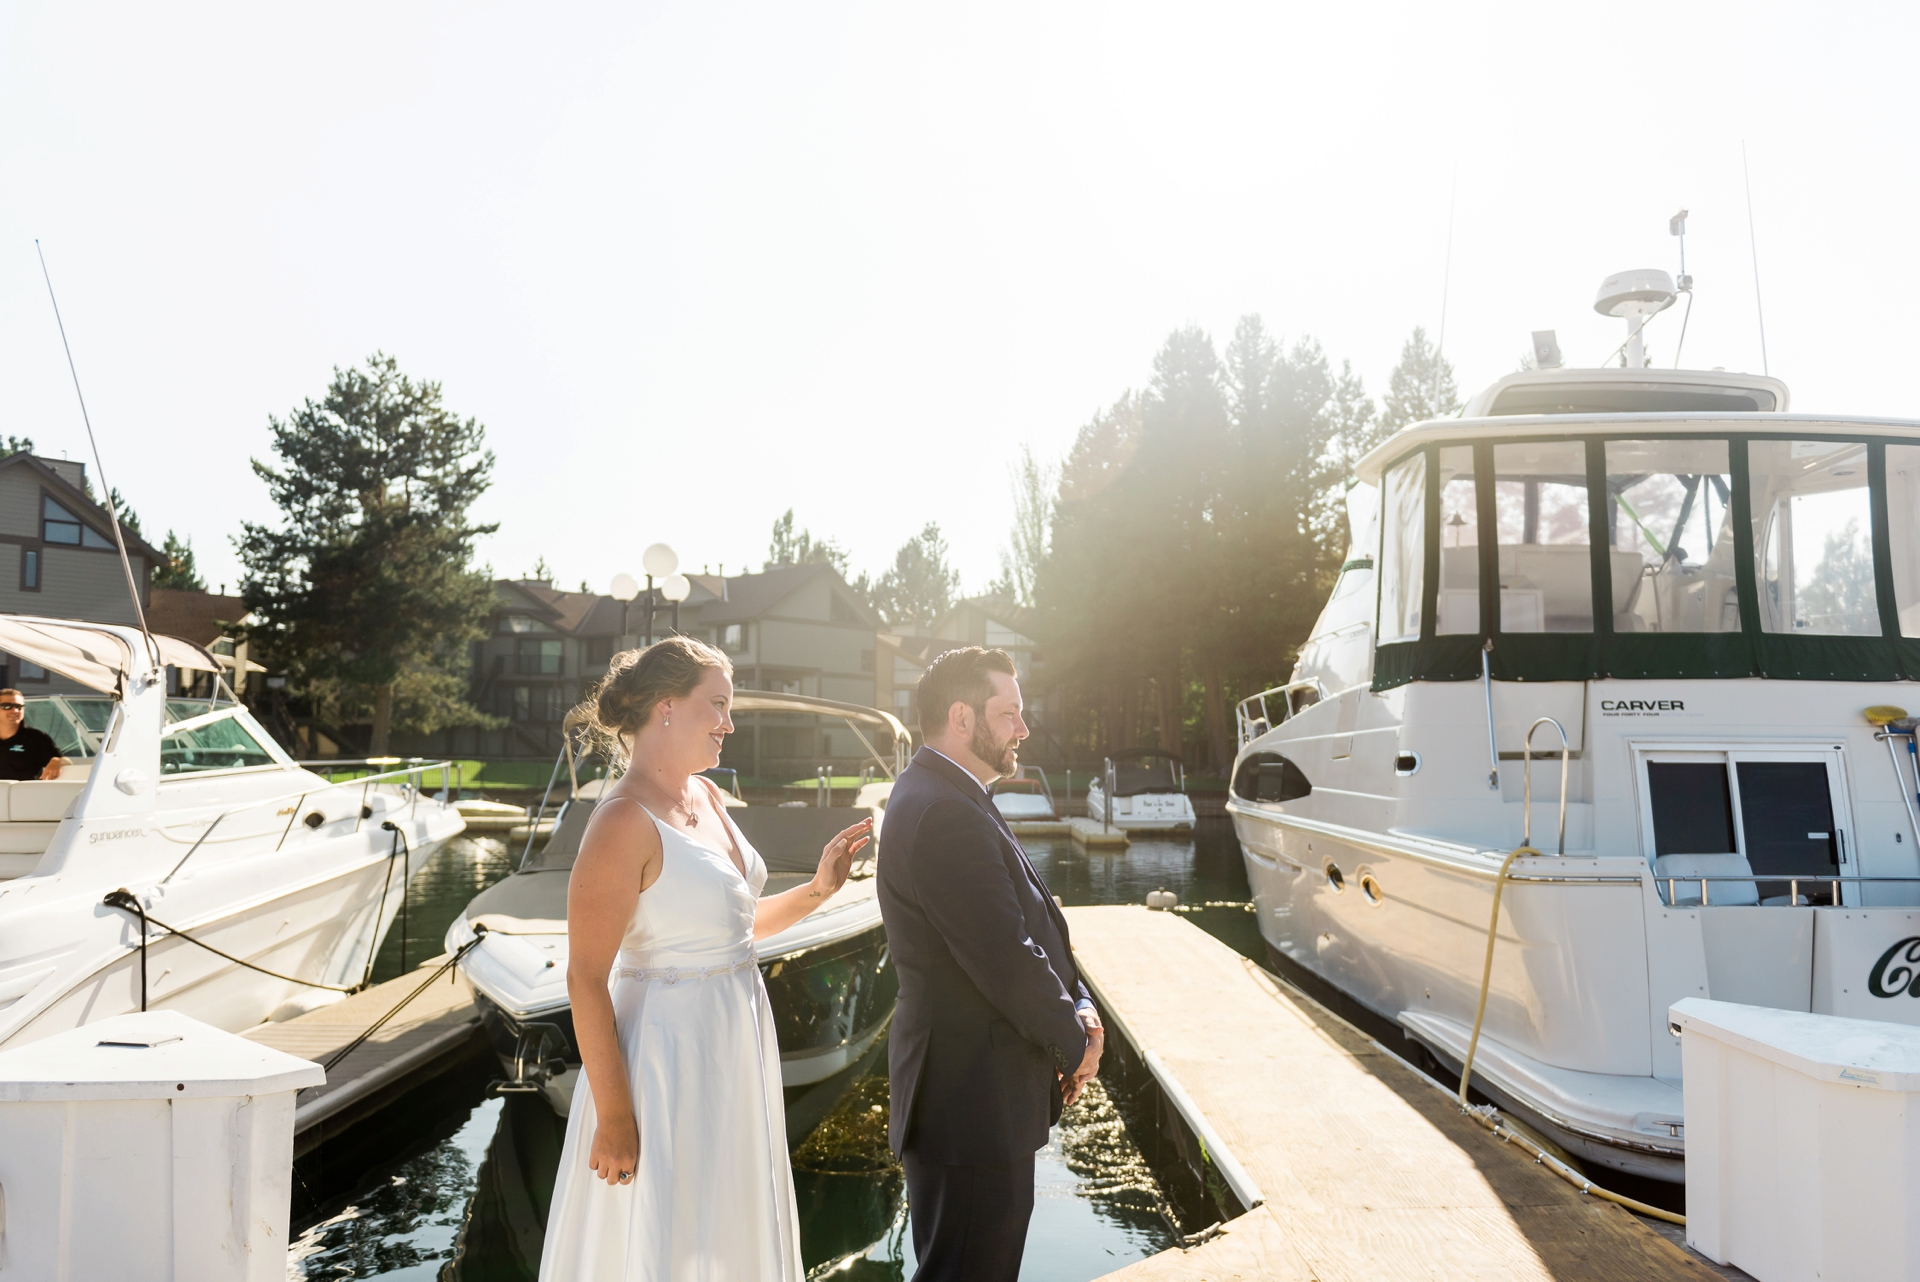 South Lake Tahoe, CA Boat Rides Wedding Photography | The bride and groom share their first look before boarding the boat